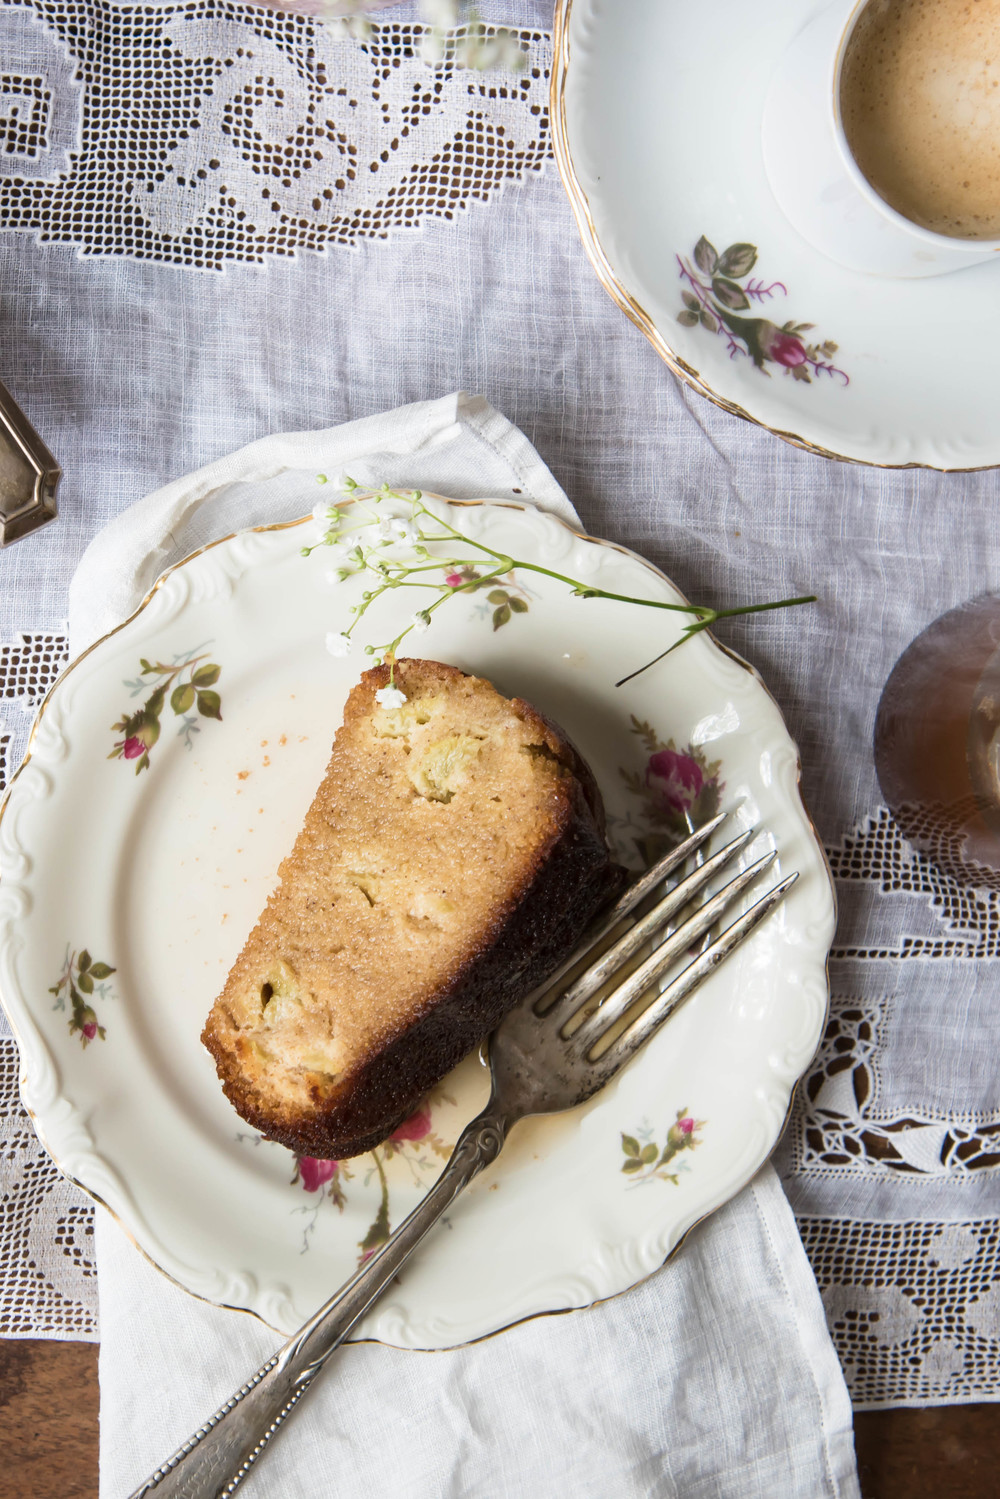 ROSE & IVY Journal Rhubarb Olive Oil Cake Gluten Free